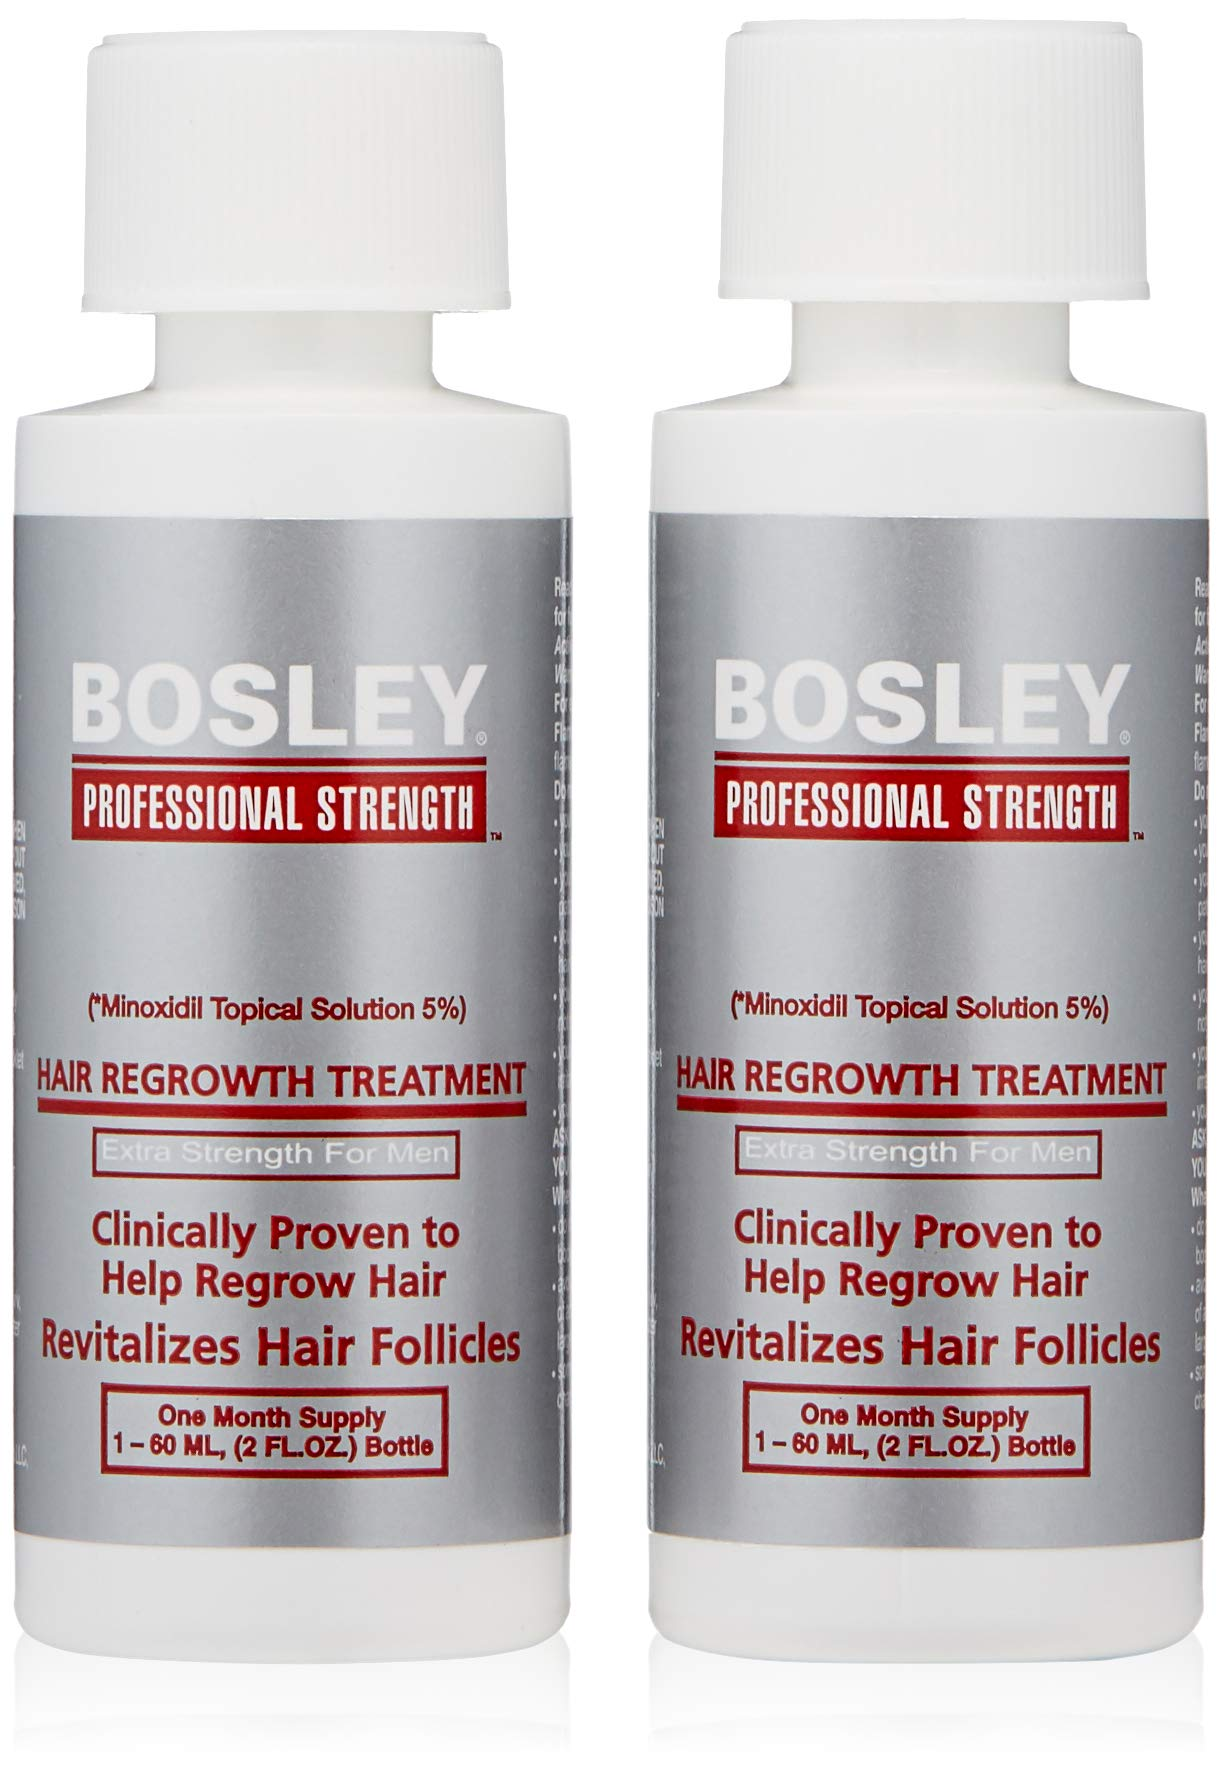 Bosley Professional Strength Men's Hair Re-growth Treatment, 5% Minoxidil Topical Solution by Bosley Professional Strength